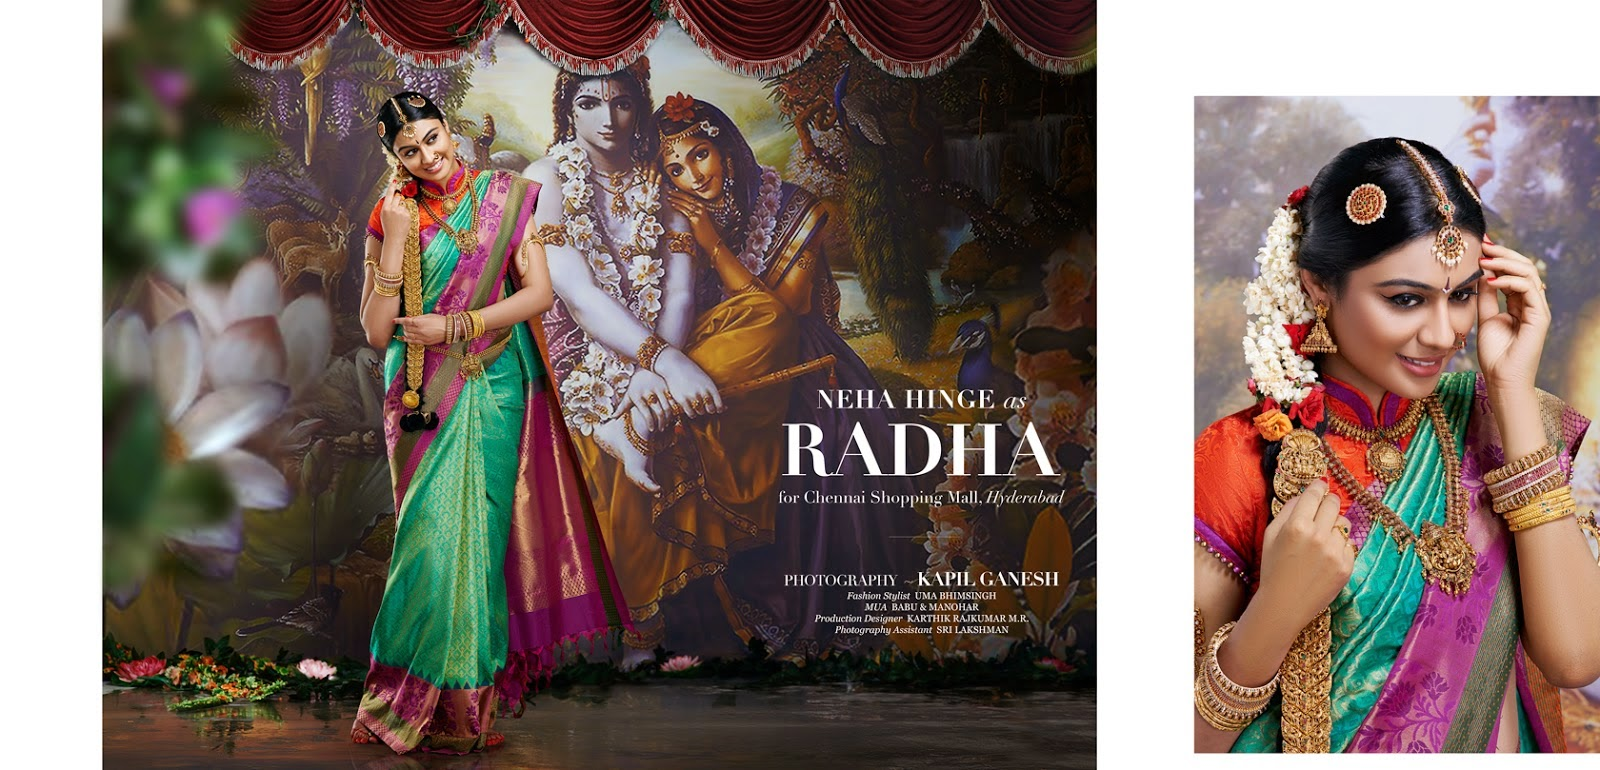 , Neha Hinge as Radha for Chennai Shopping Mall, Hyderabad